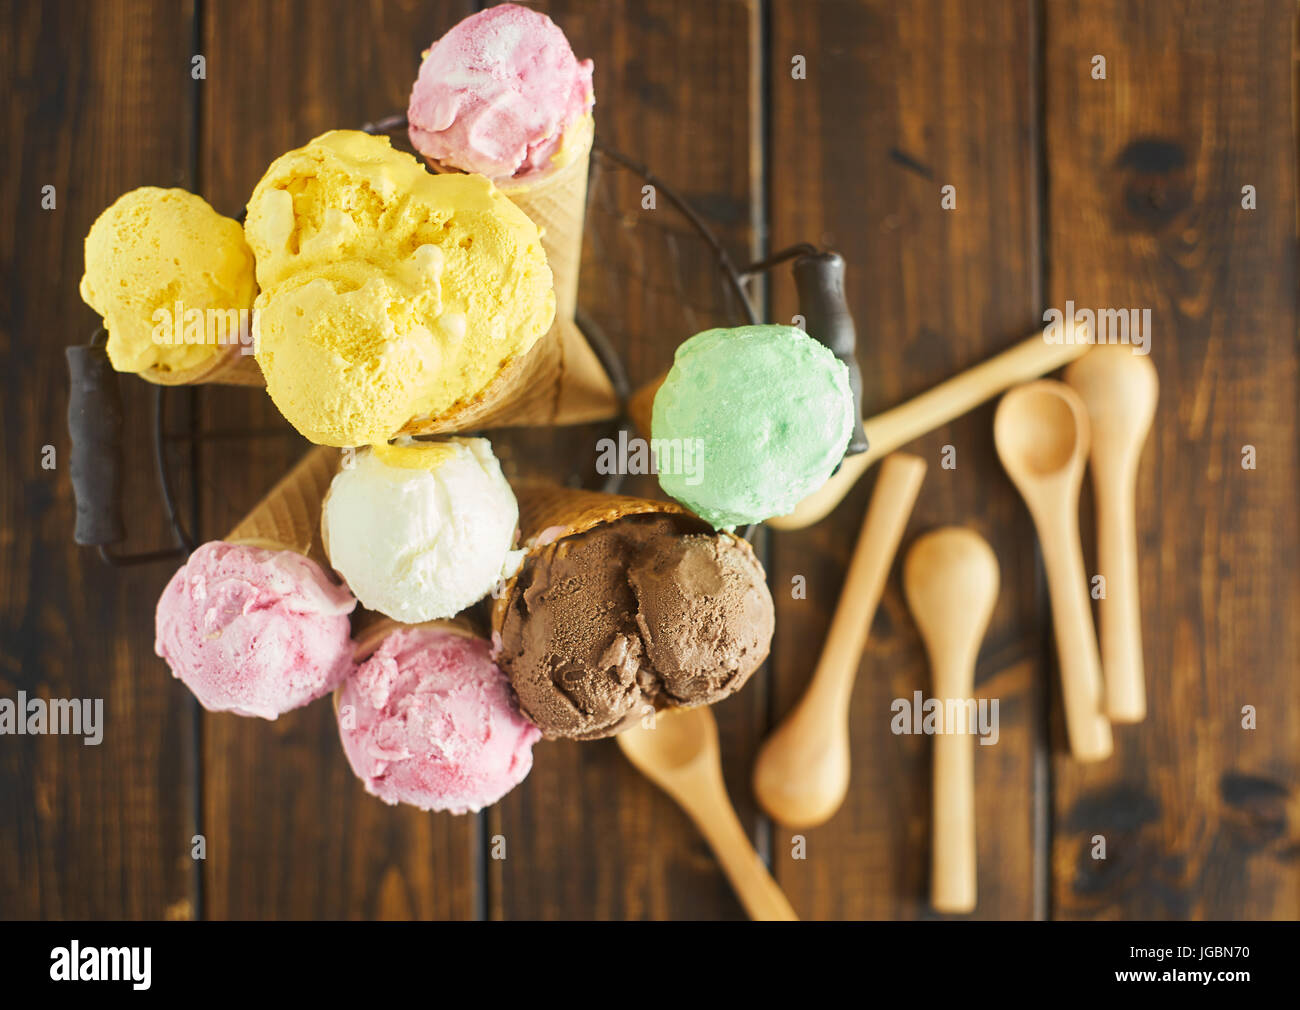 Top view of ice cream cones - Stock Image